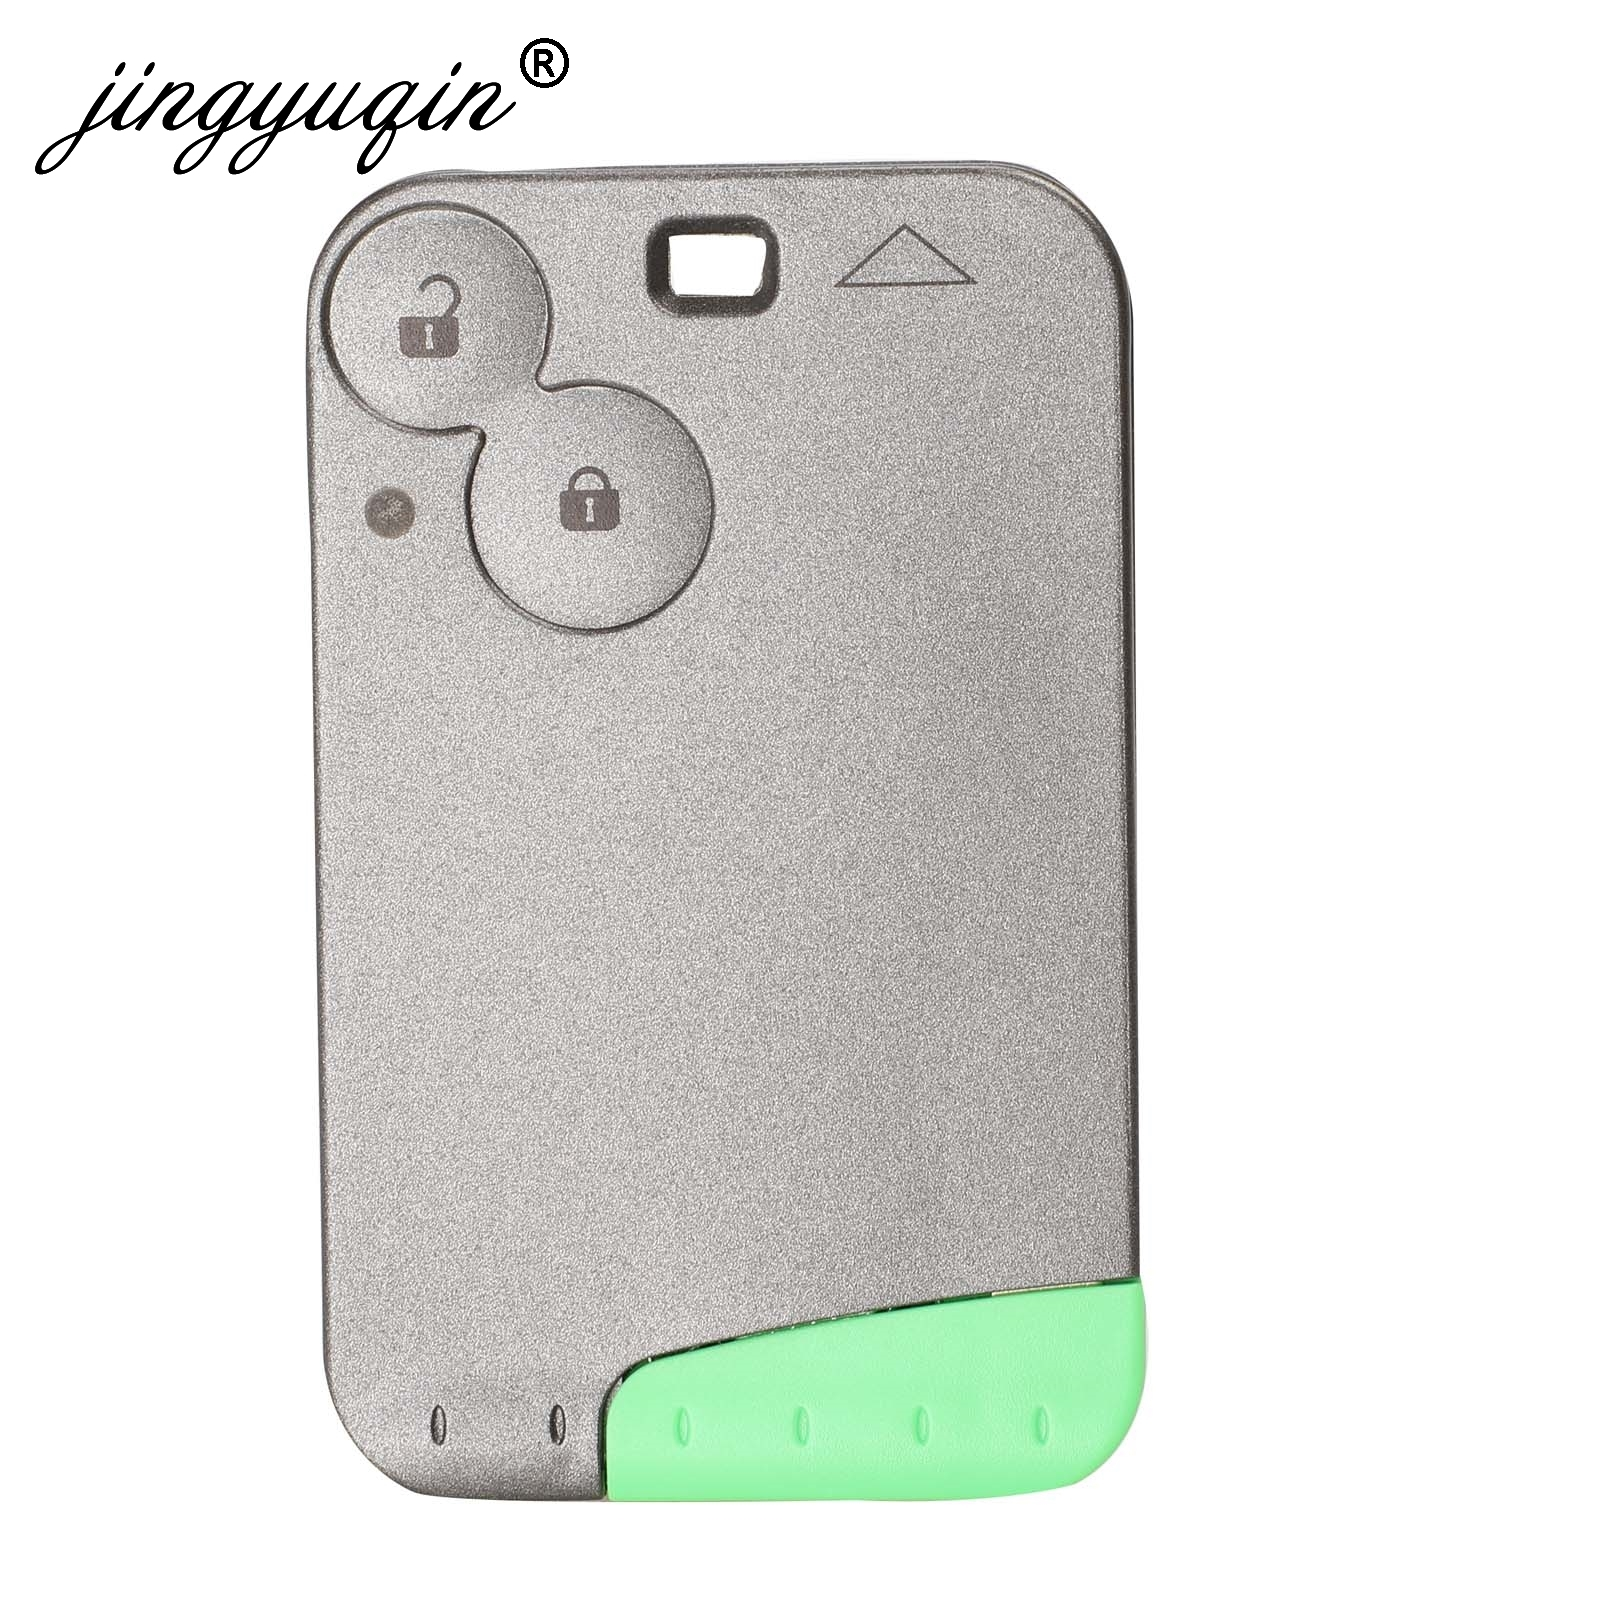 Image 3 - jingyuqin 2 Button Remote Key PCF7947 Chip 433Mhz suit for Renault Laguna Espace 2001 2006 Smart Card Remote Fob Car Styling-in Car Key from Automobiles & Motorcycles